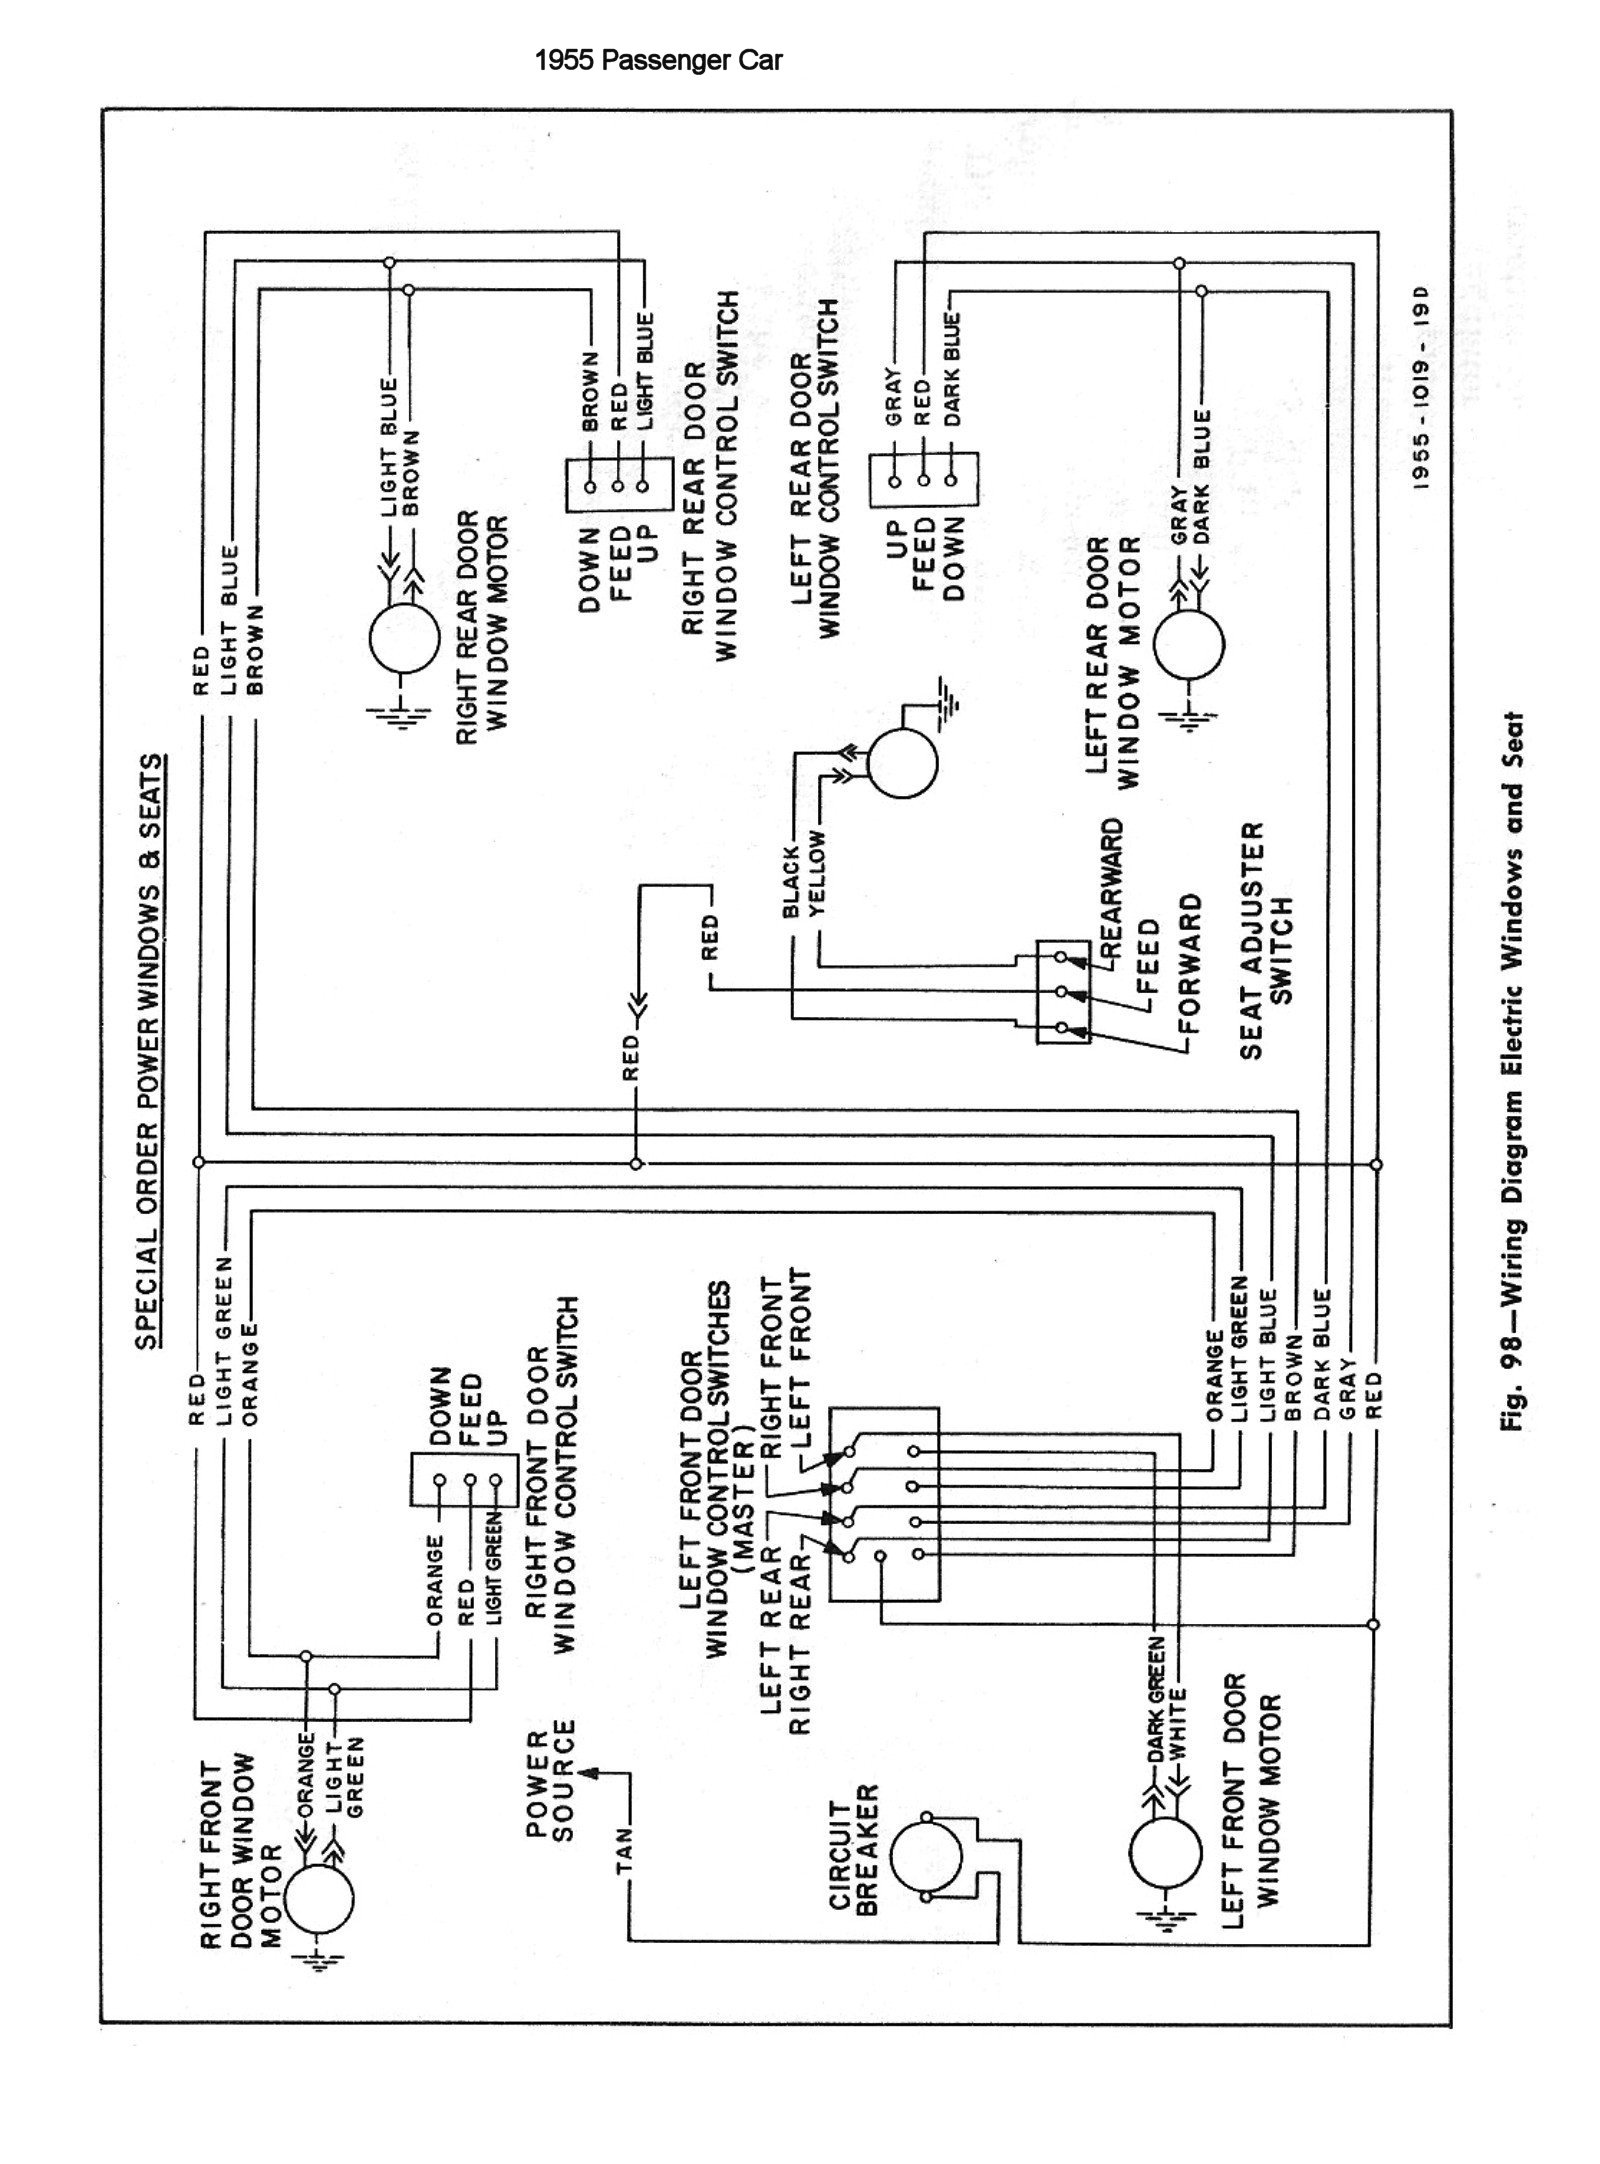 55csm0146 chevy wiring diagrams 1985 chevy truck wiring diagram free at honlapkeszites.co